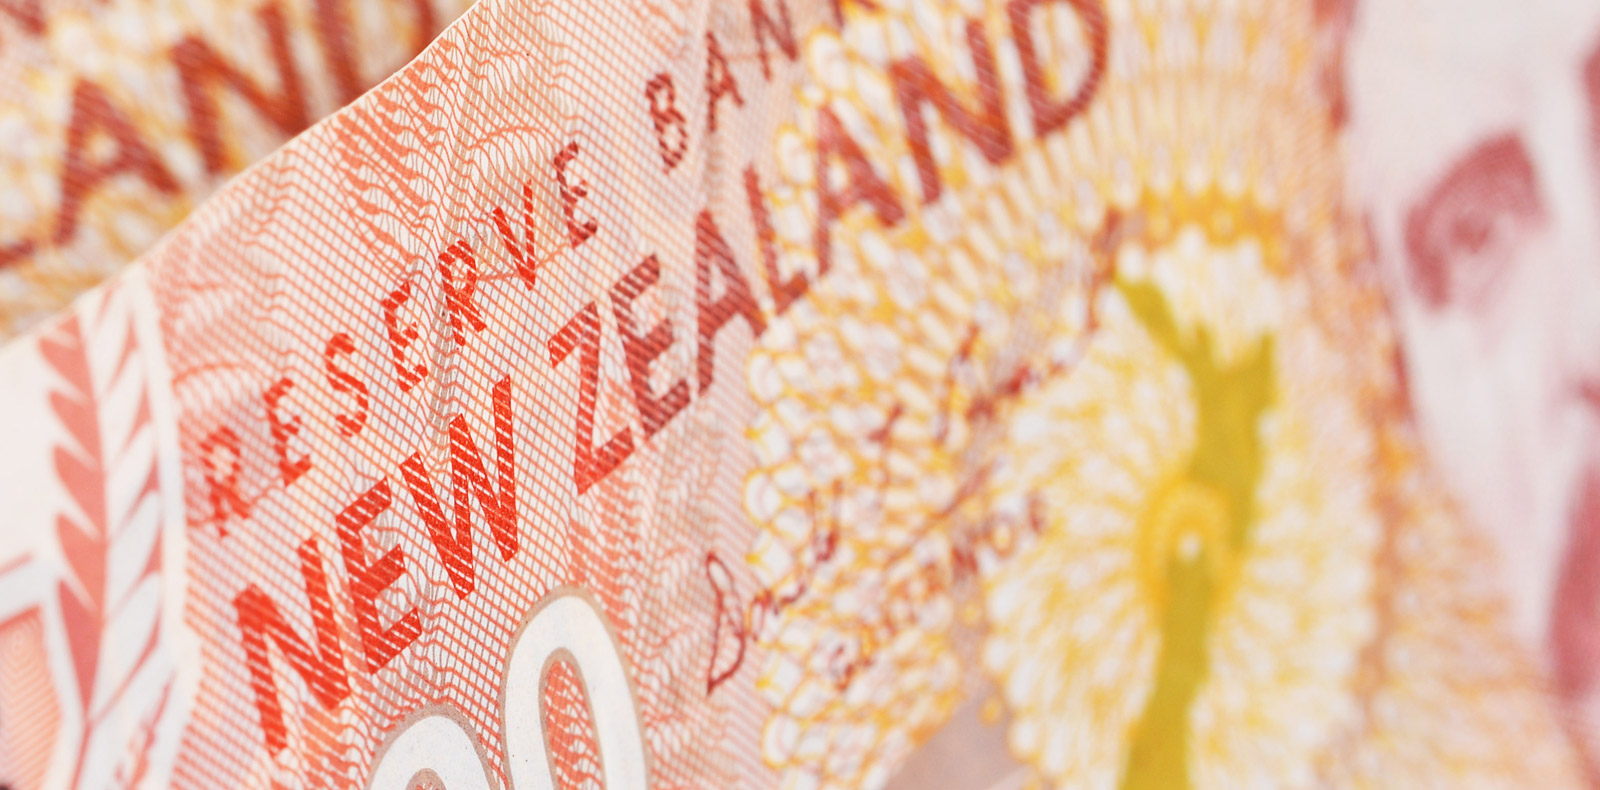 New Zealand Dollar sees movement as the RBNZ cuts interest rates by 50 basis points.